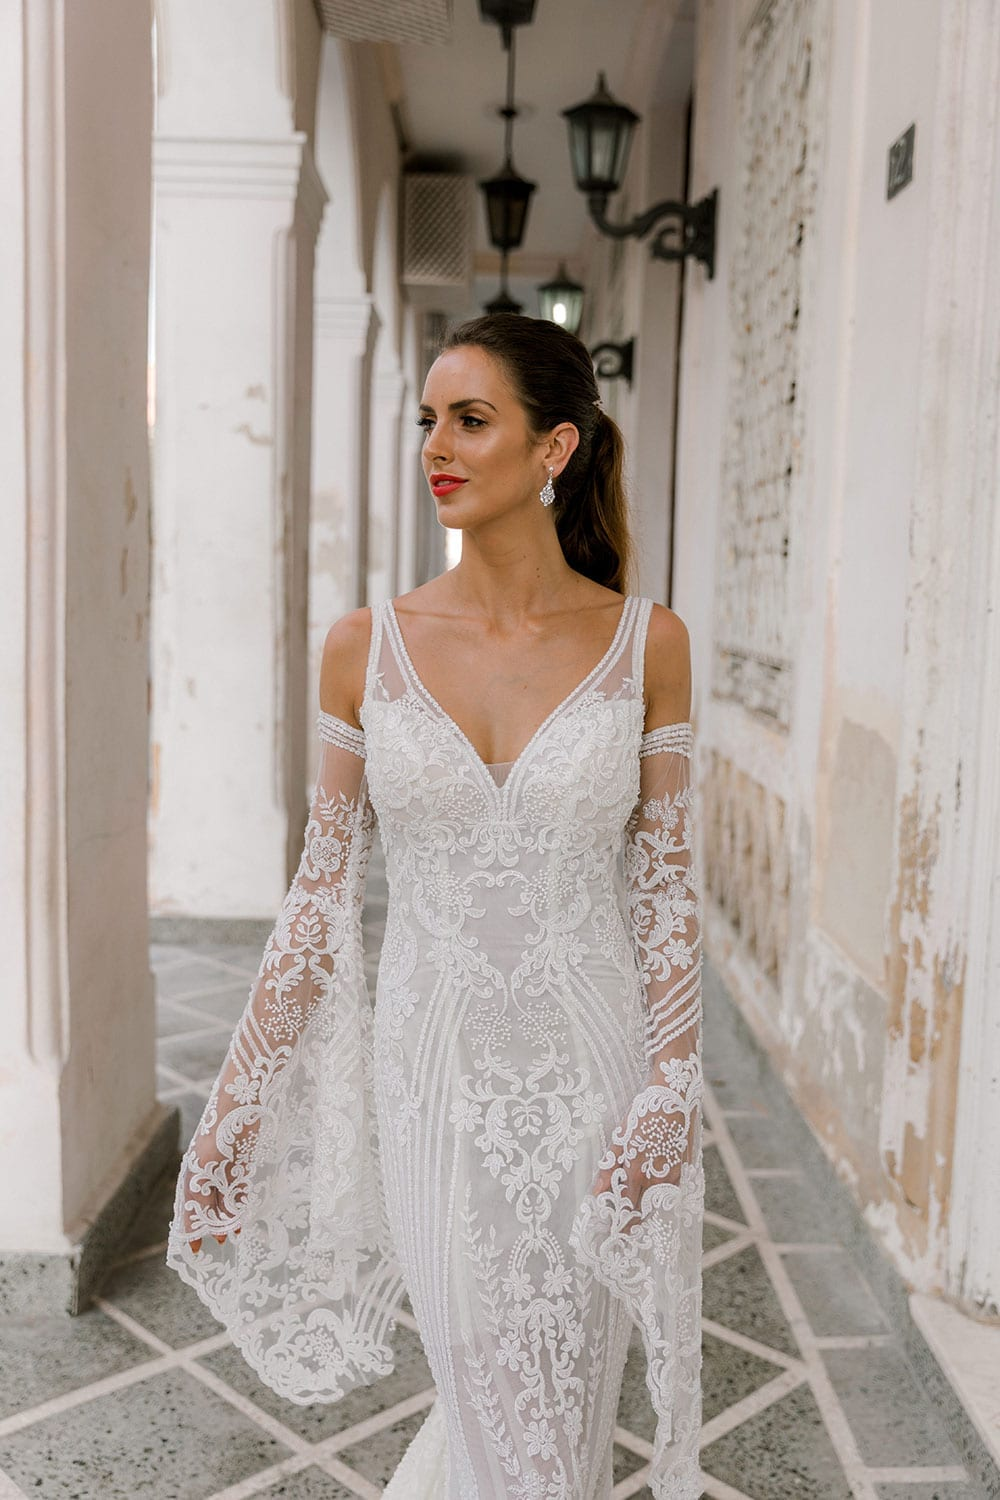 Model wearing Vinka Design Indi Wedding Dress, a Lace Fitted Wedding Gown in a walkway of old Havana